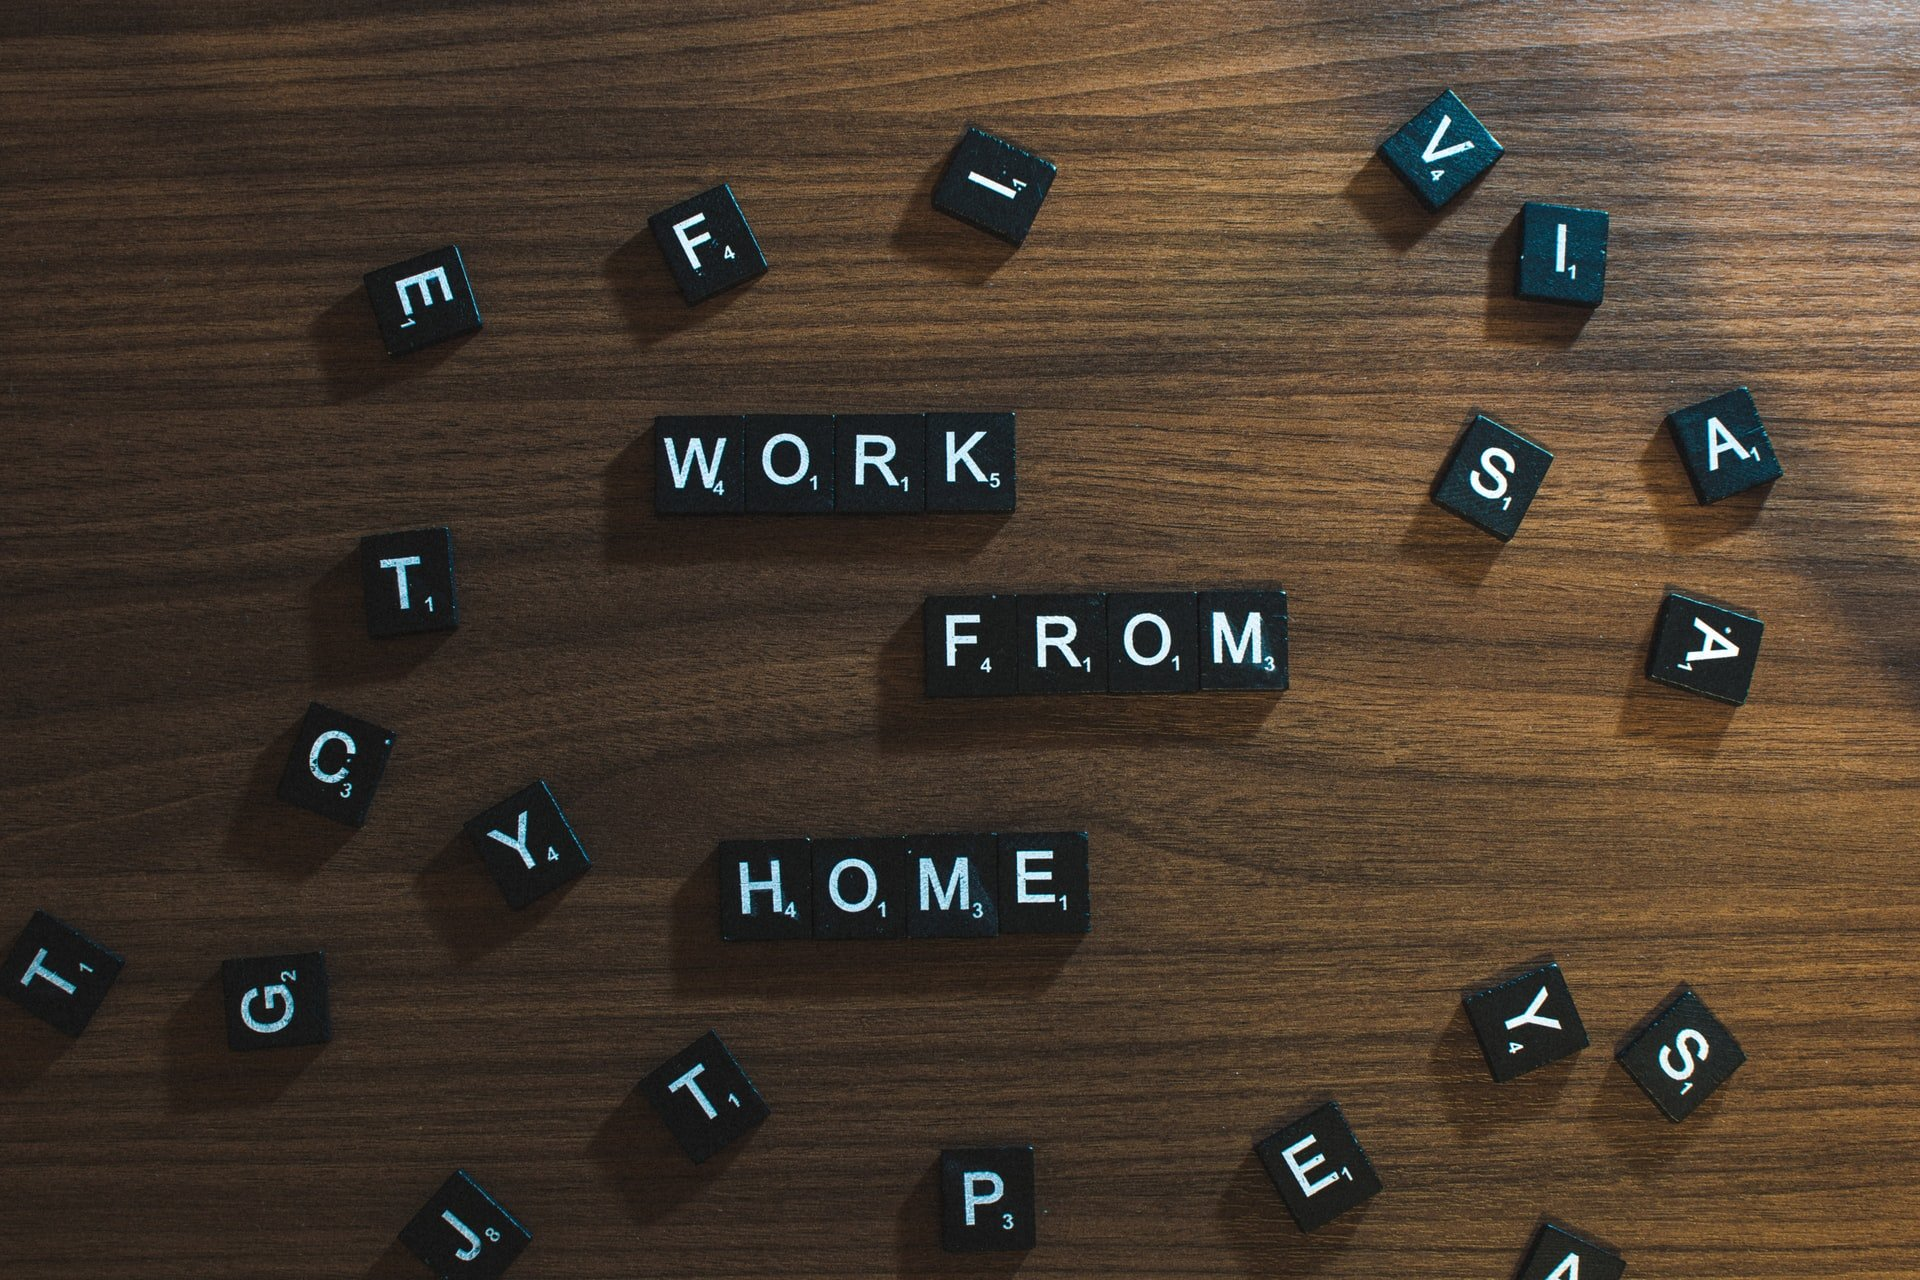 work from home strategies to increase productivity